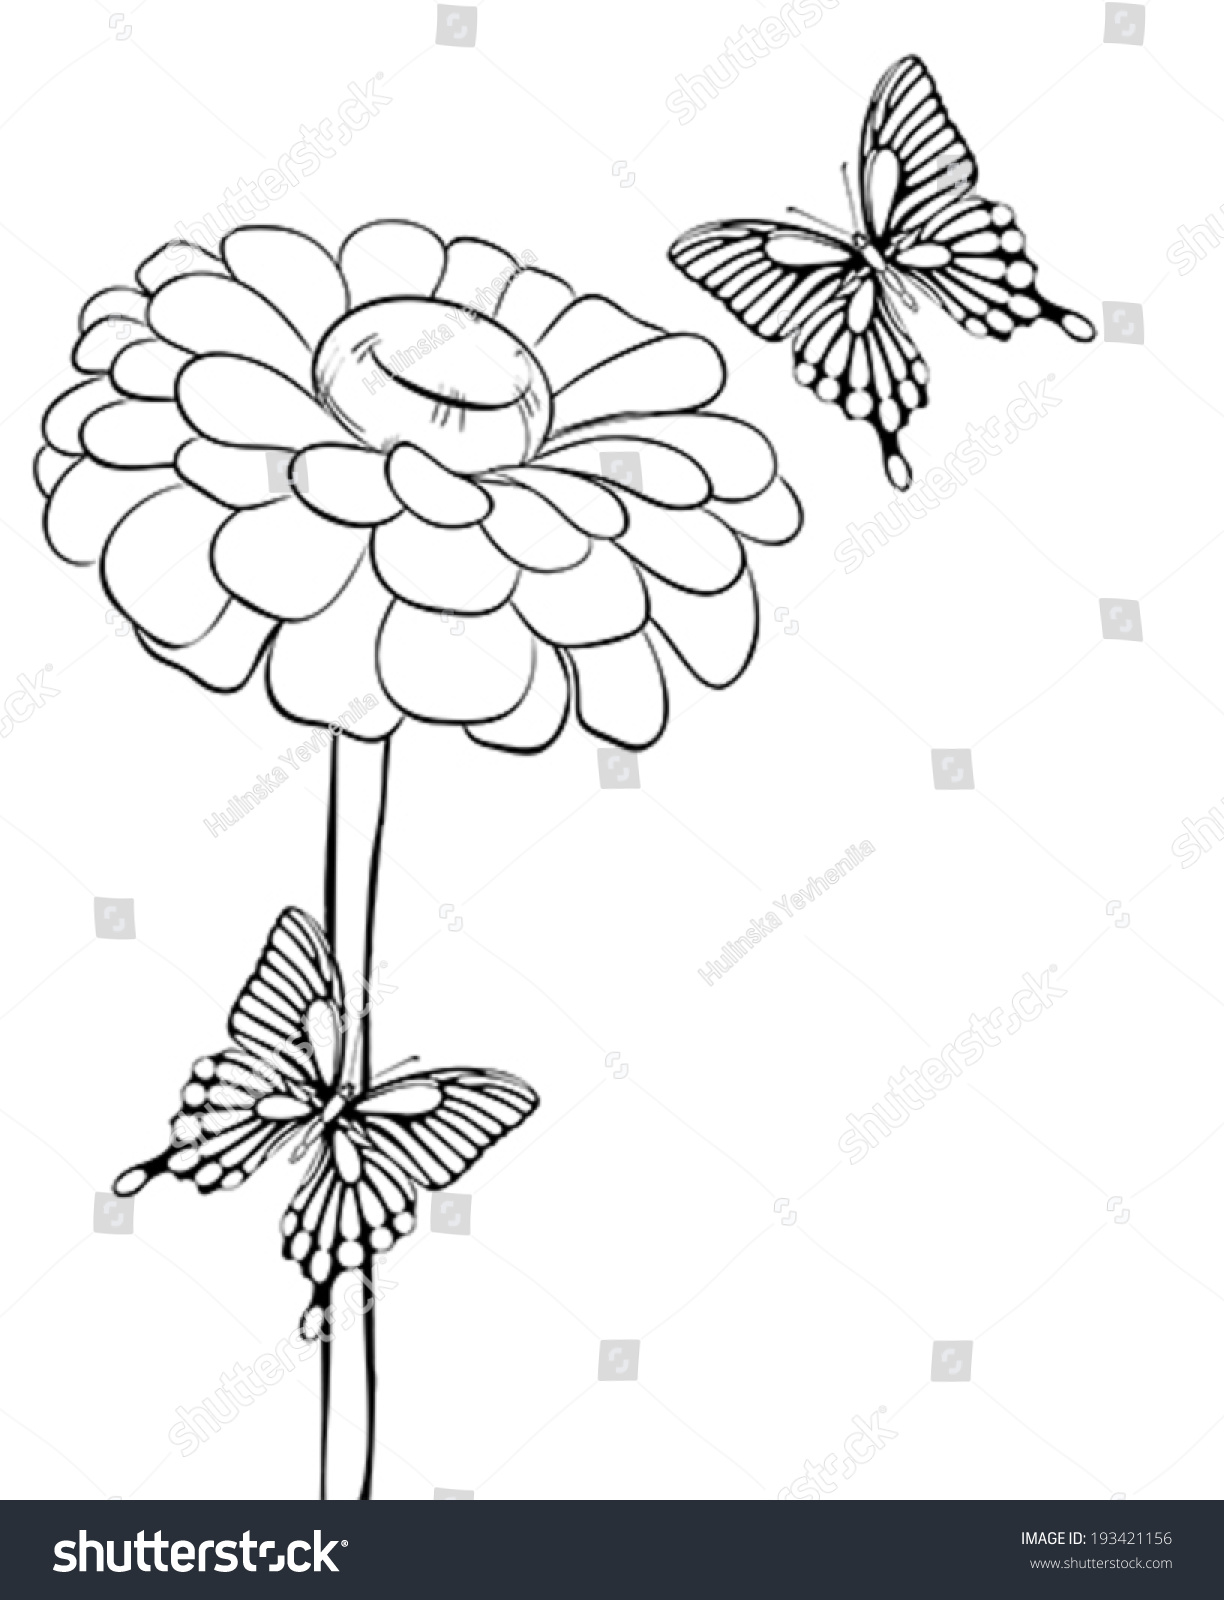 Contour Line Drawing Butterfly : Beautiful black and white flower with butterflies hand